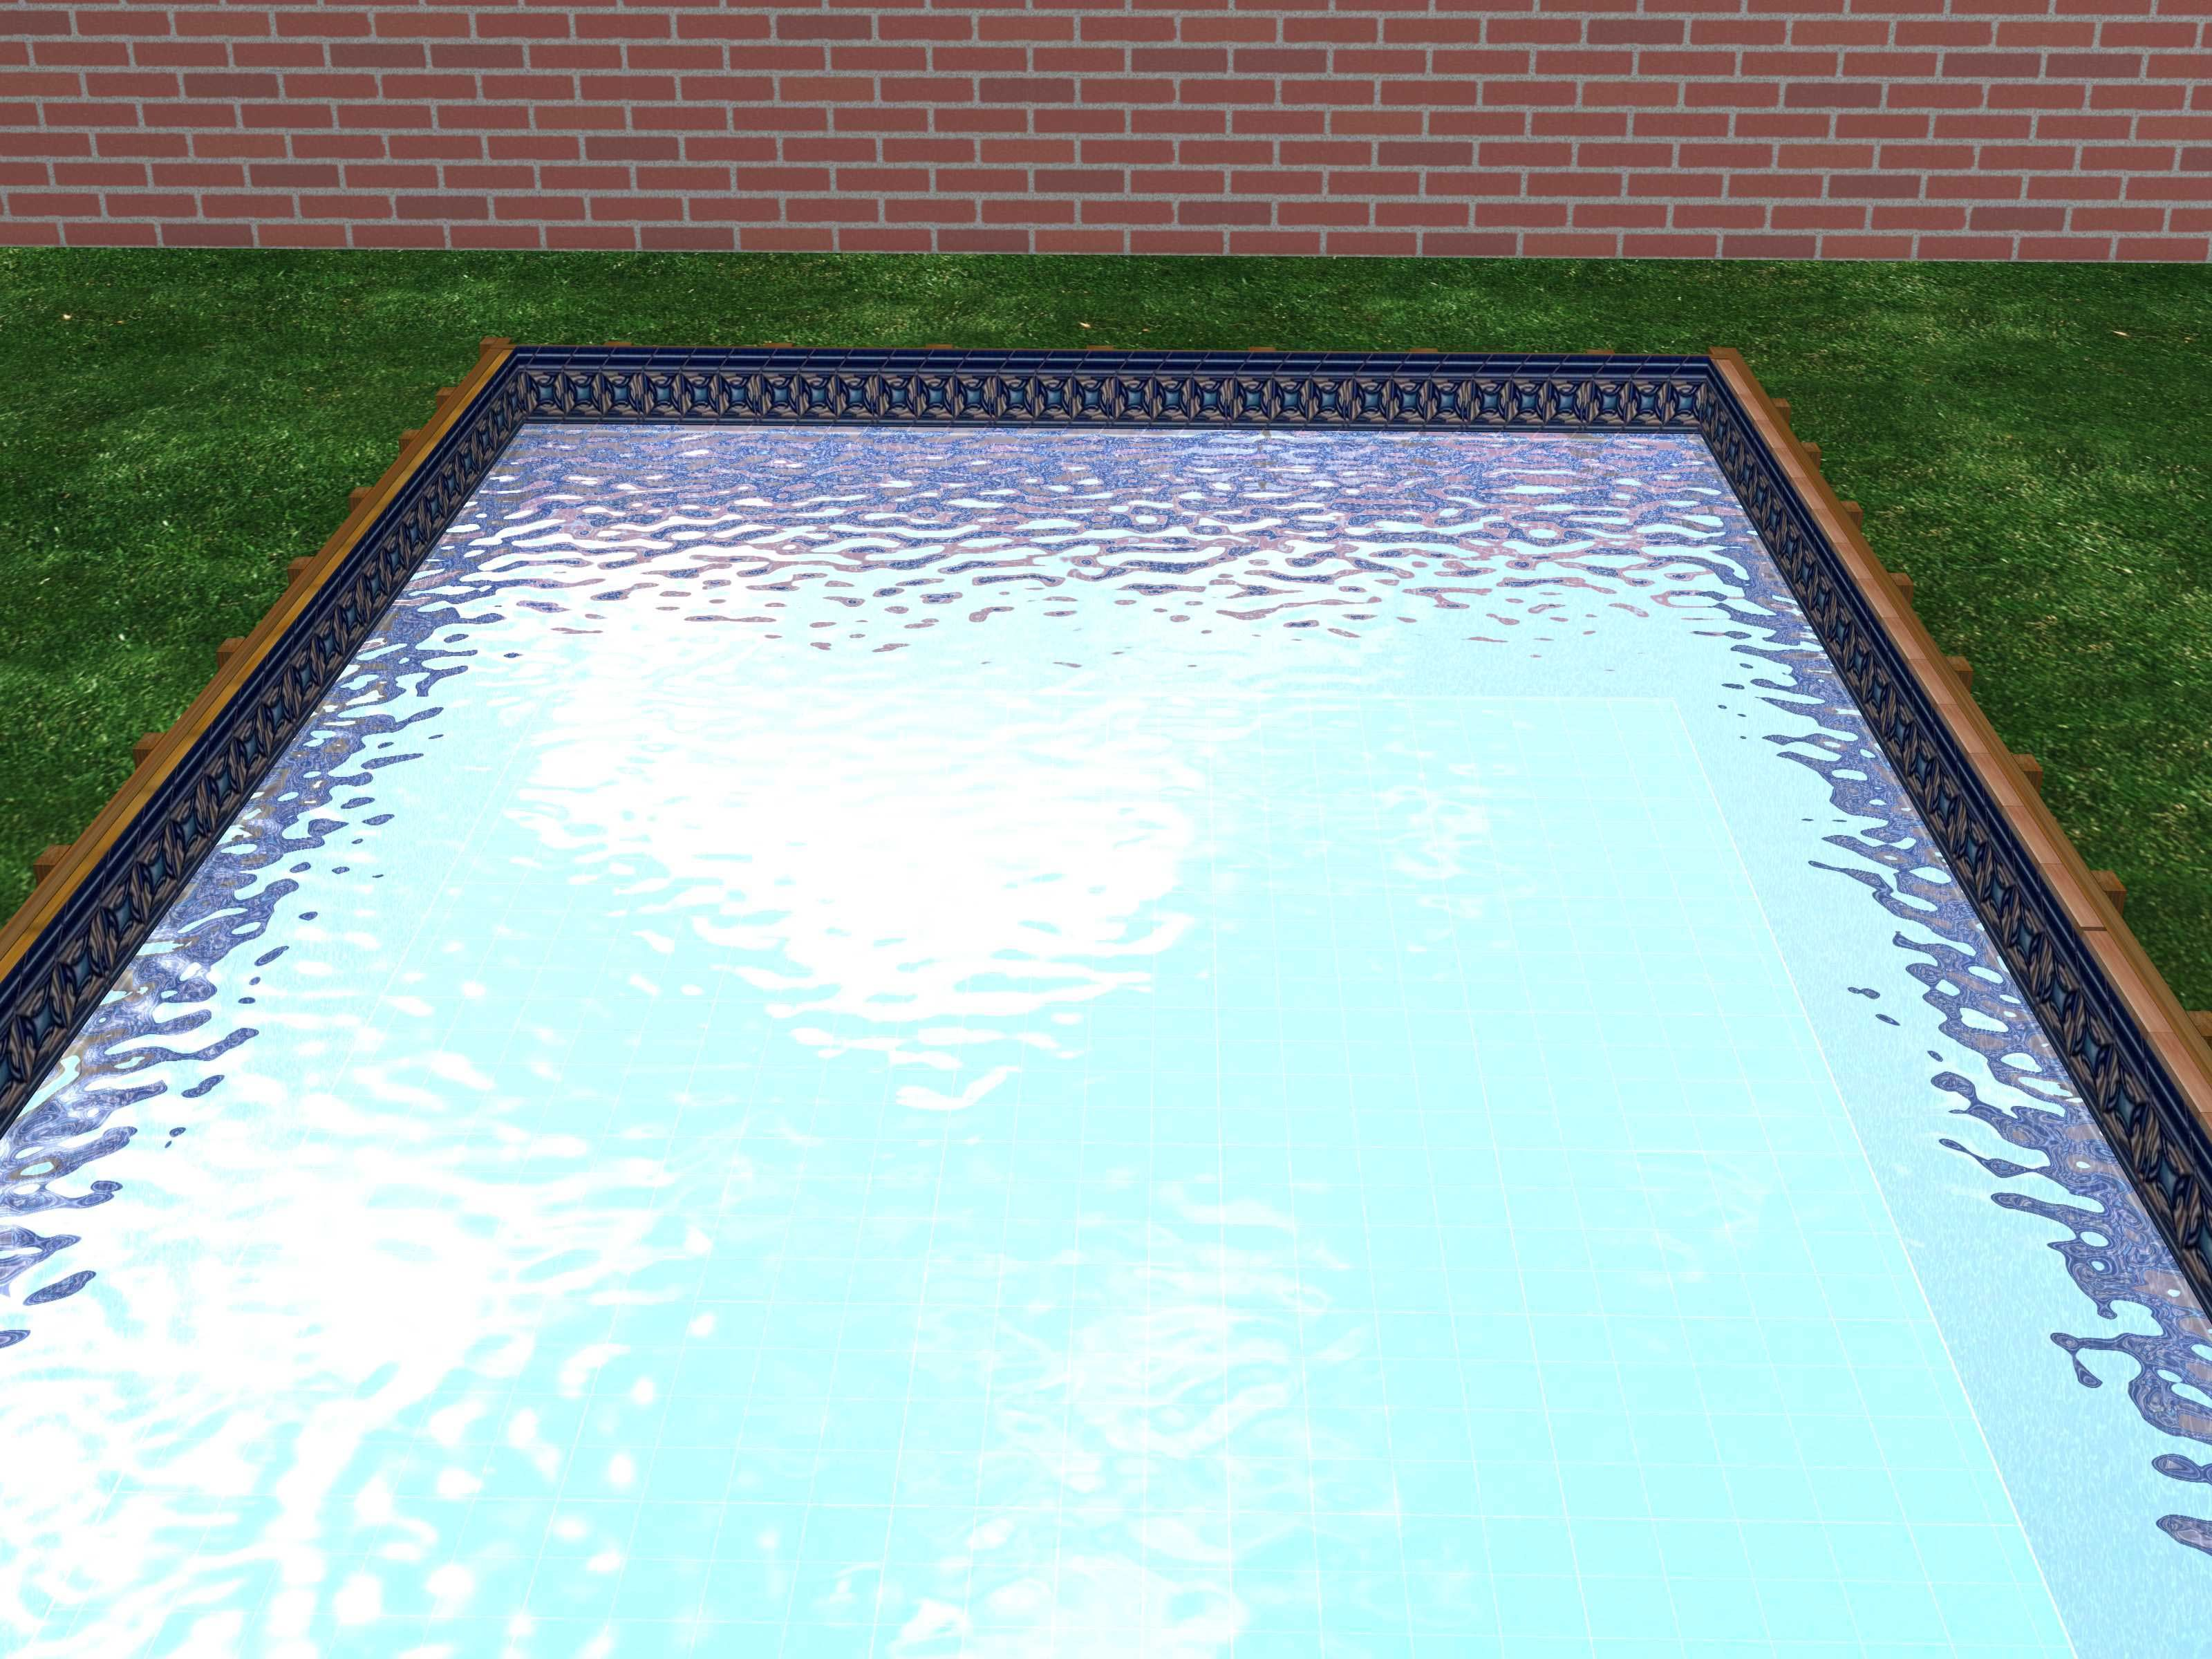 How to build a swimming pool from wood and plastic diy